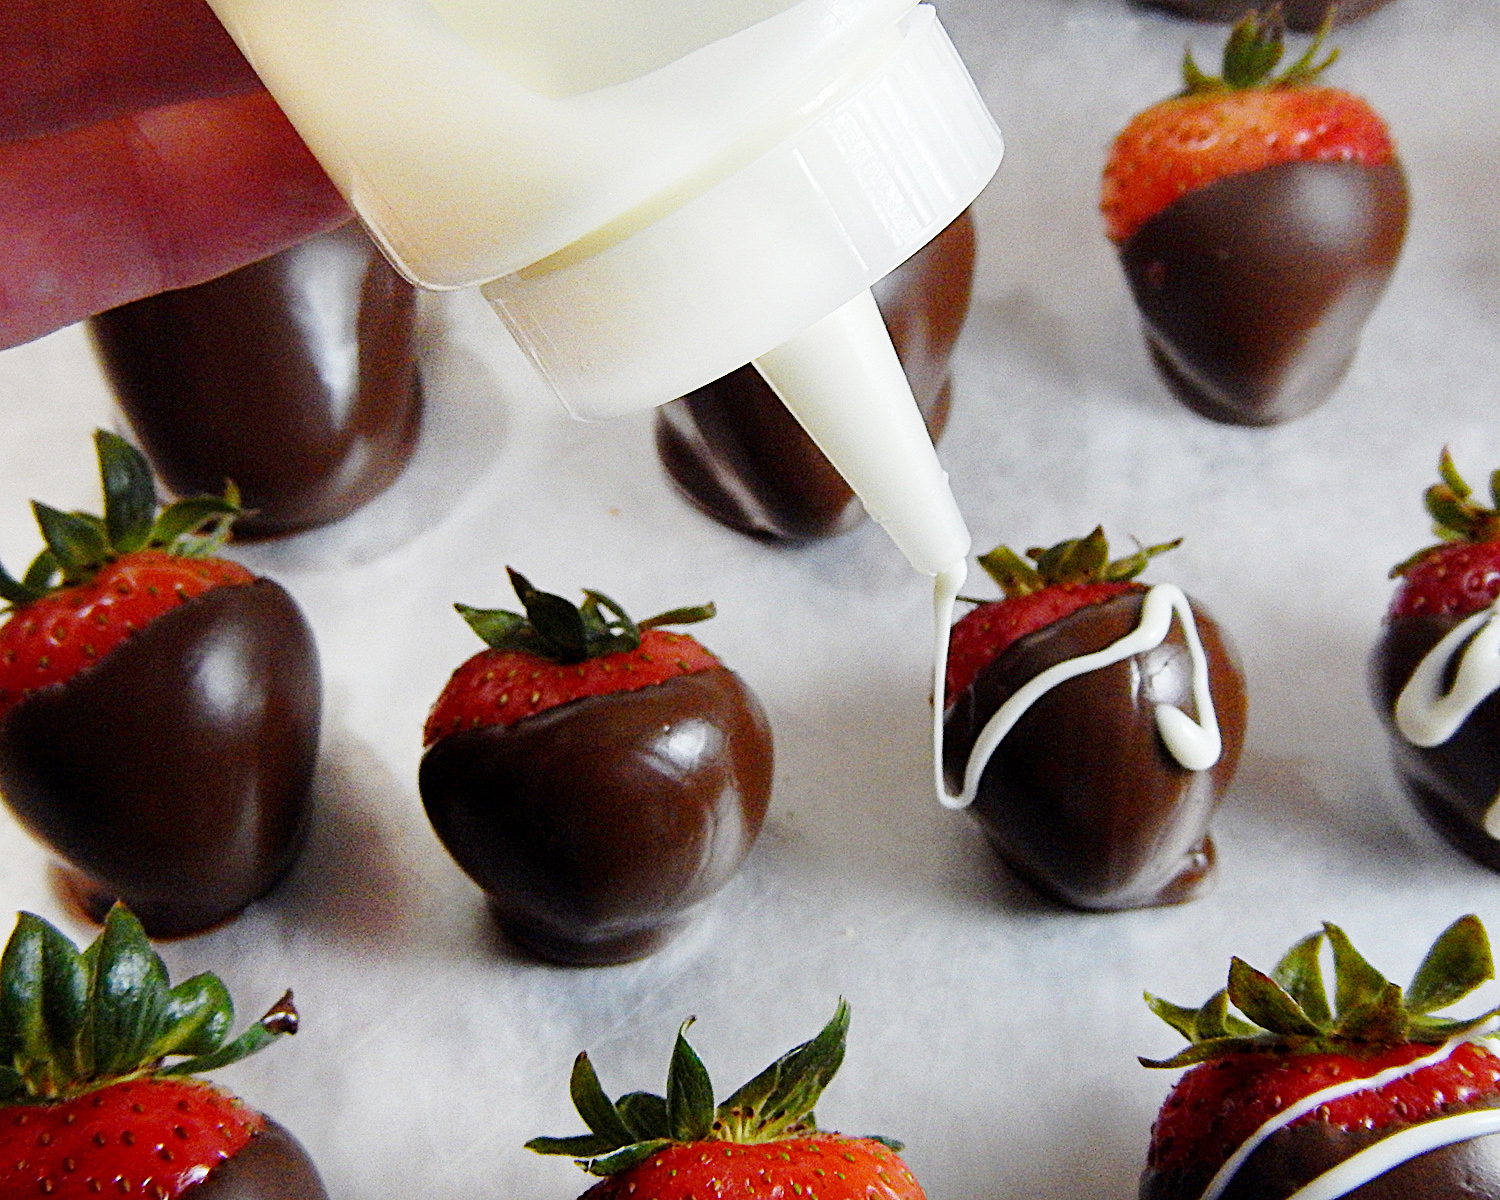 Drizzling White Chocolate on Chocolate Covered strawberries